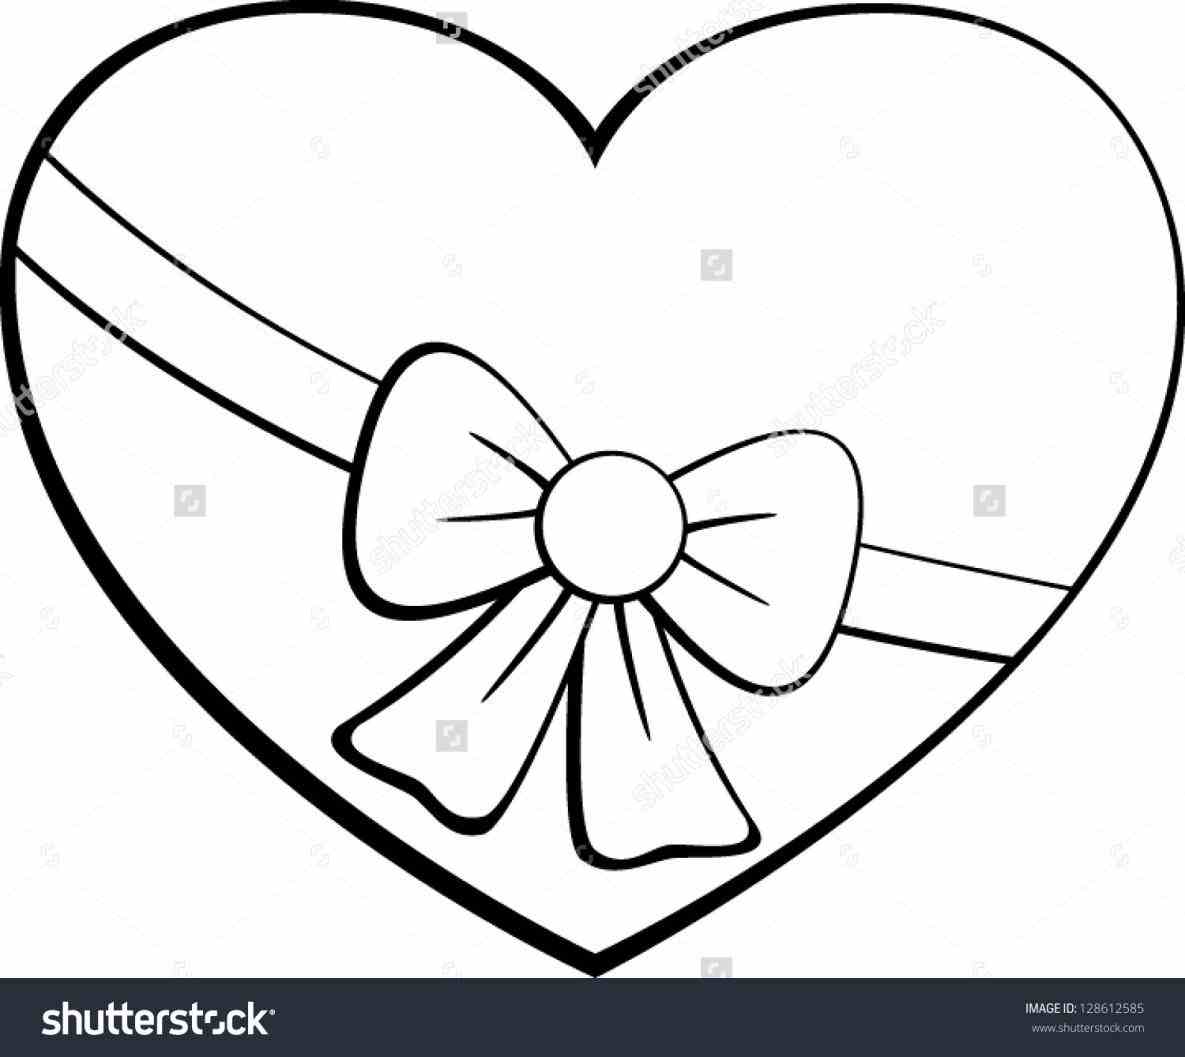 1185x1057 Hearts With Ribbons Drawings